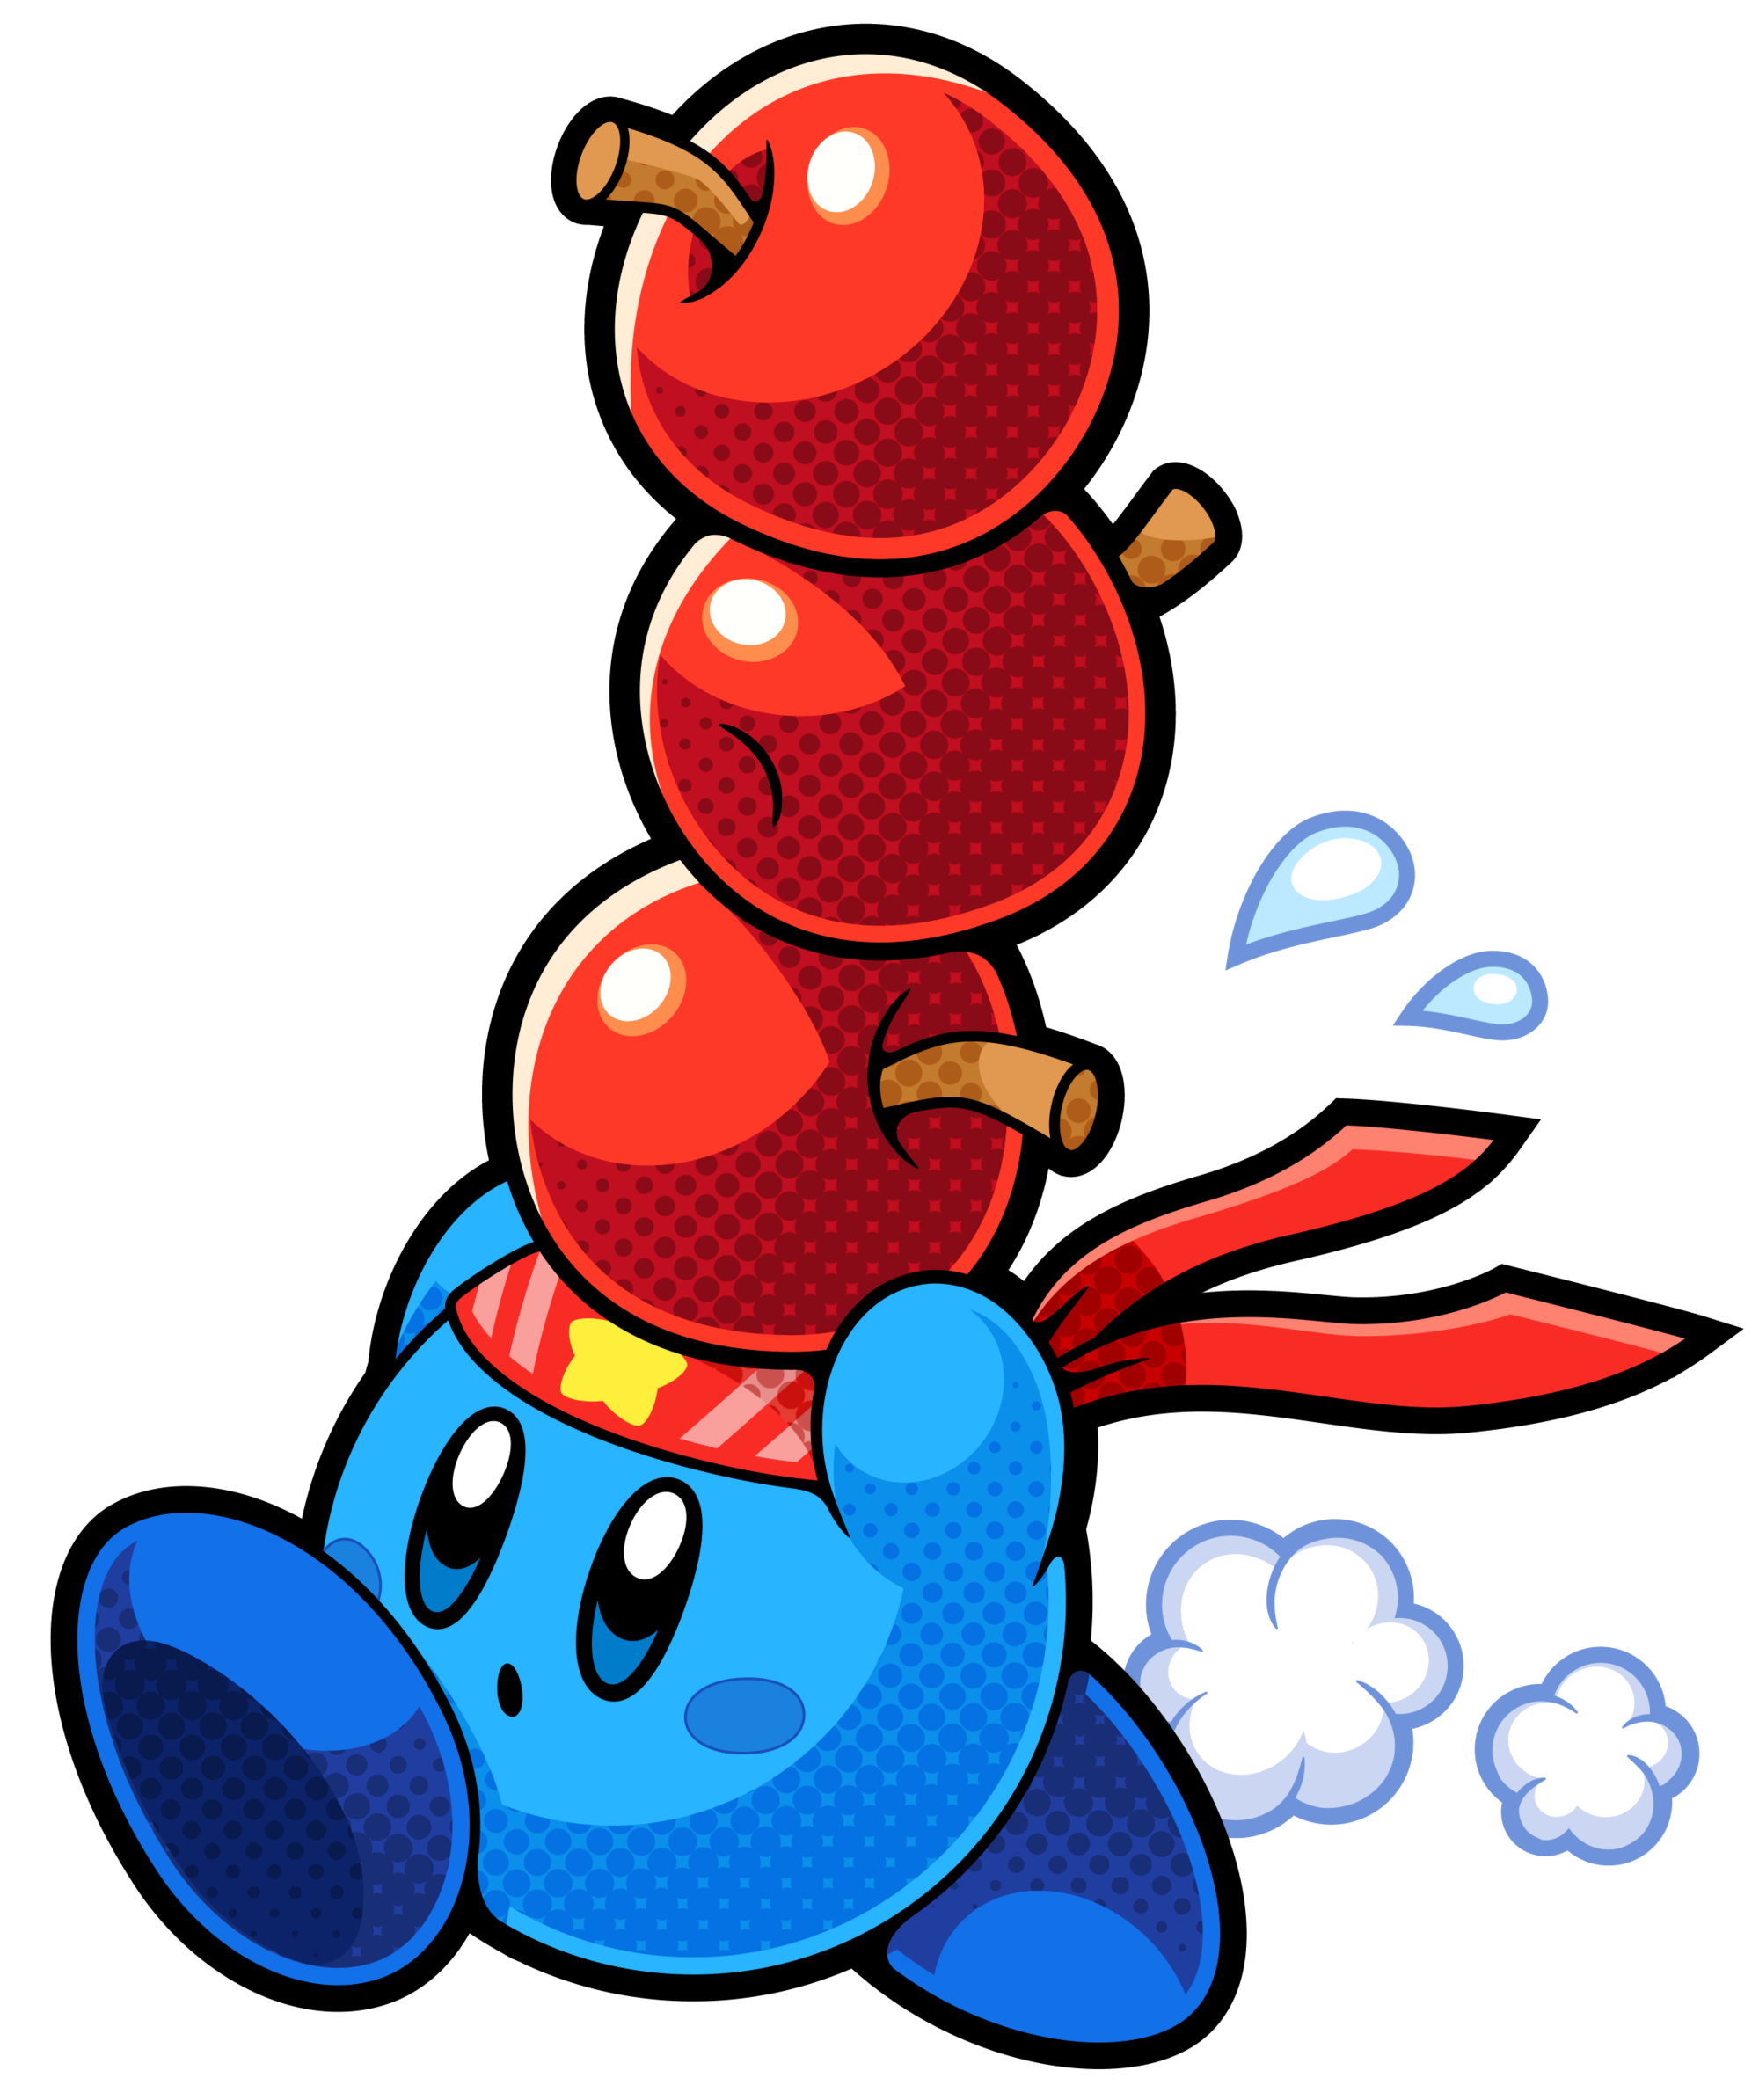 Fighter clipart jab. Kirby wiki fandom powered